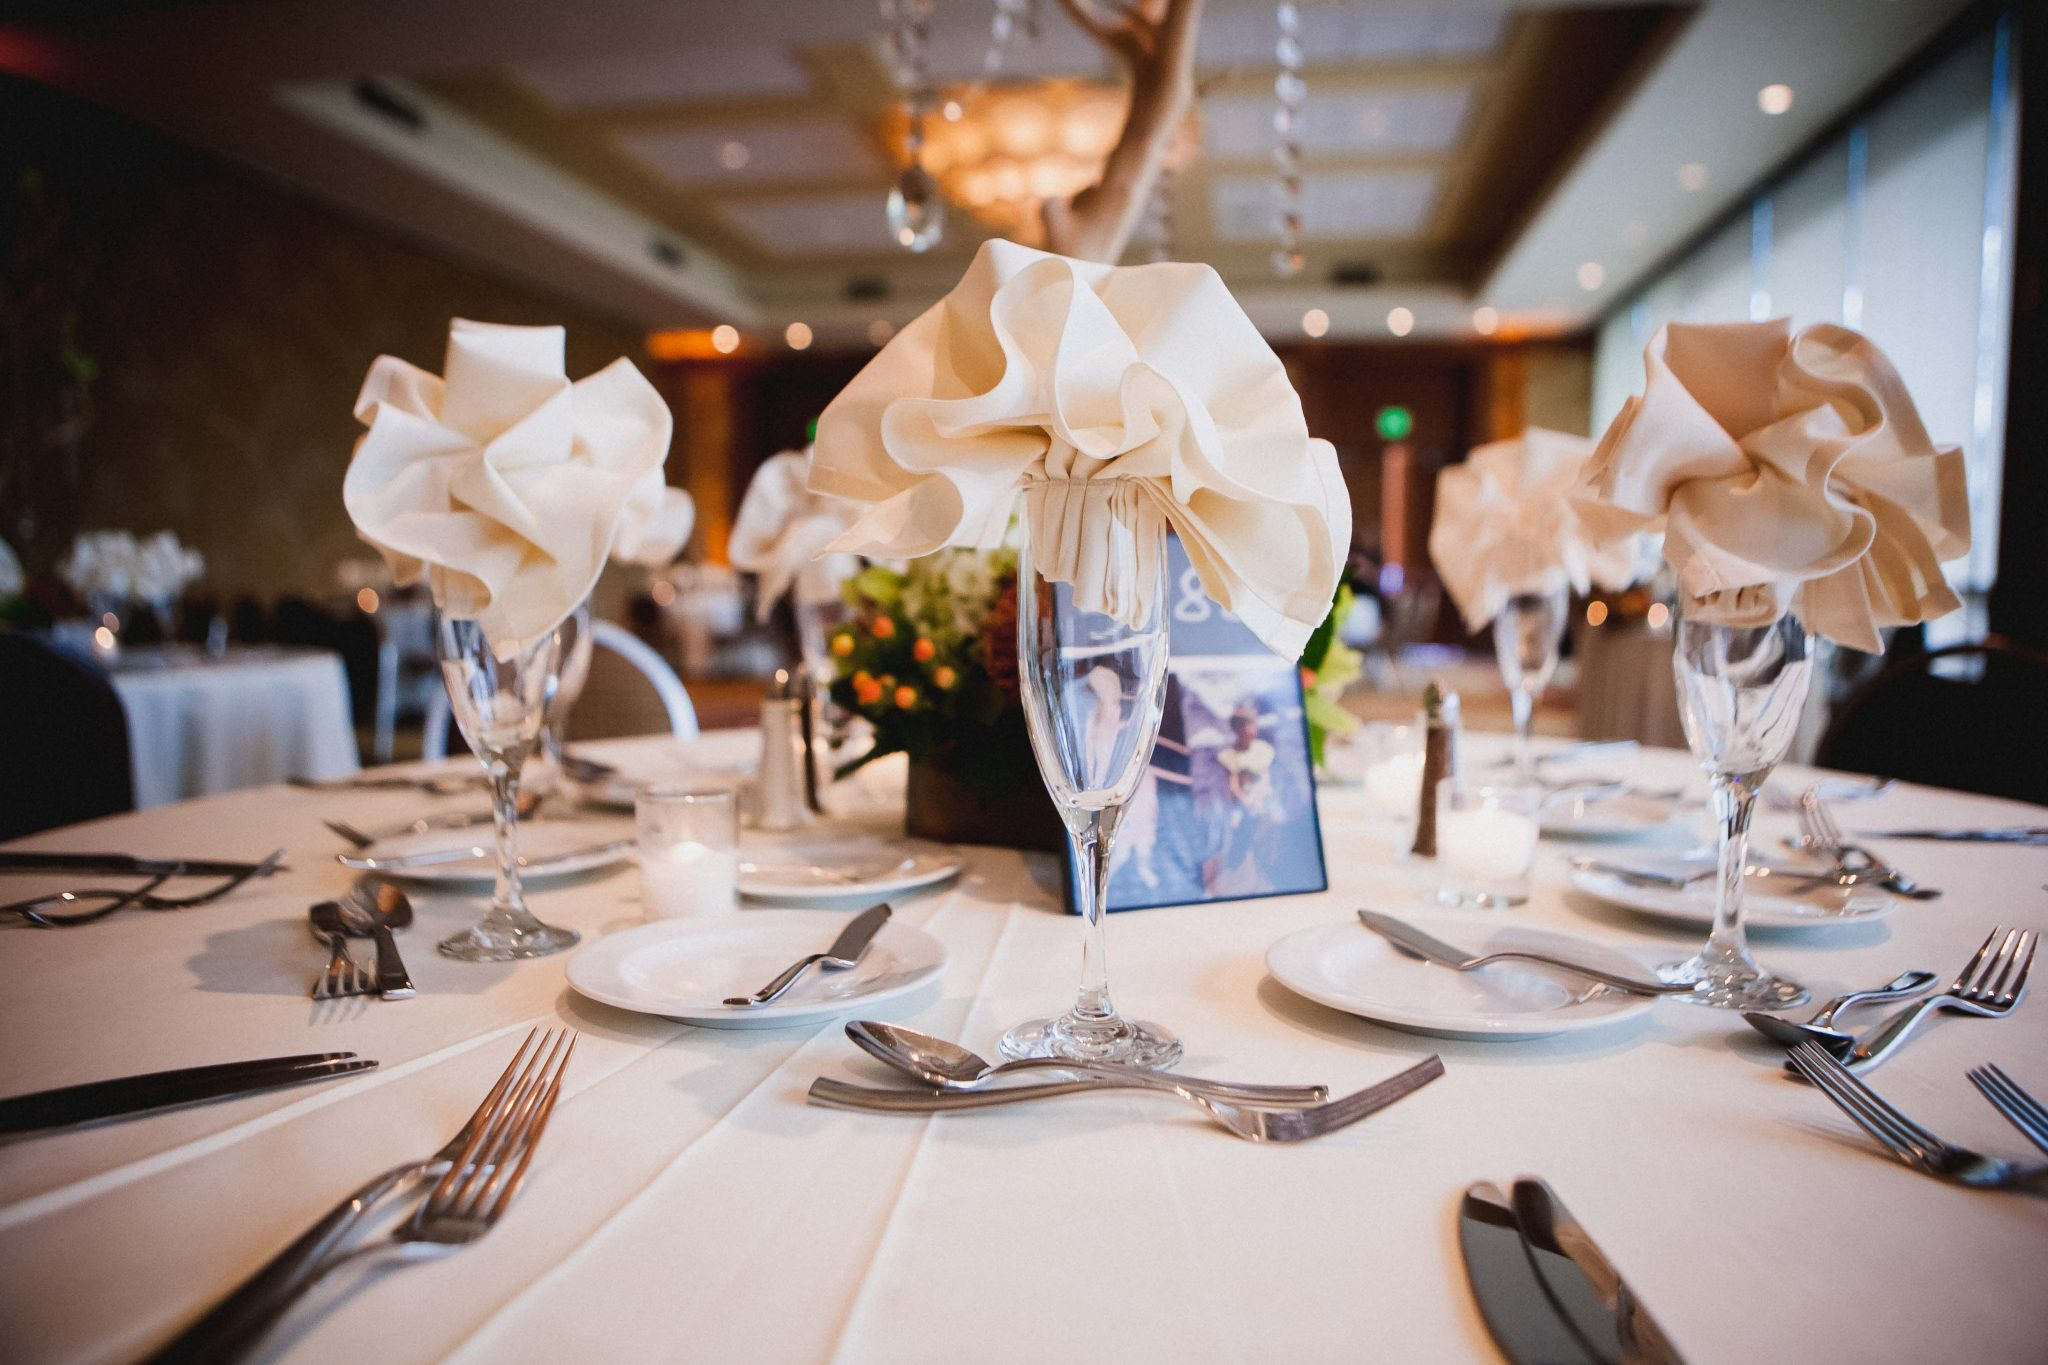 Wedding champagne glasses with cloth napkins folded inside them at a wedding reception